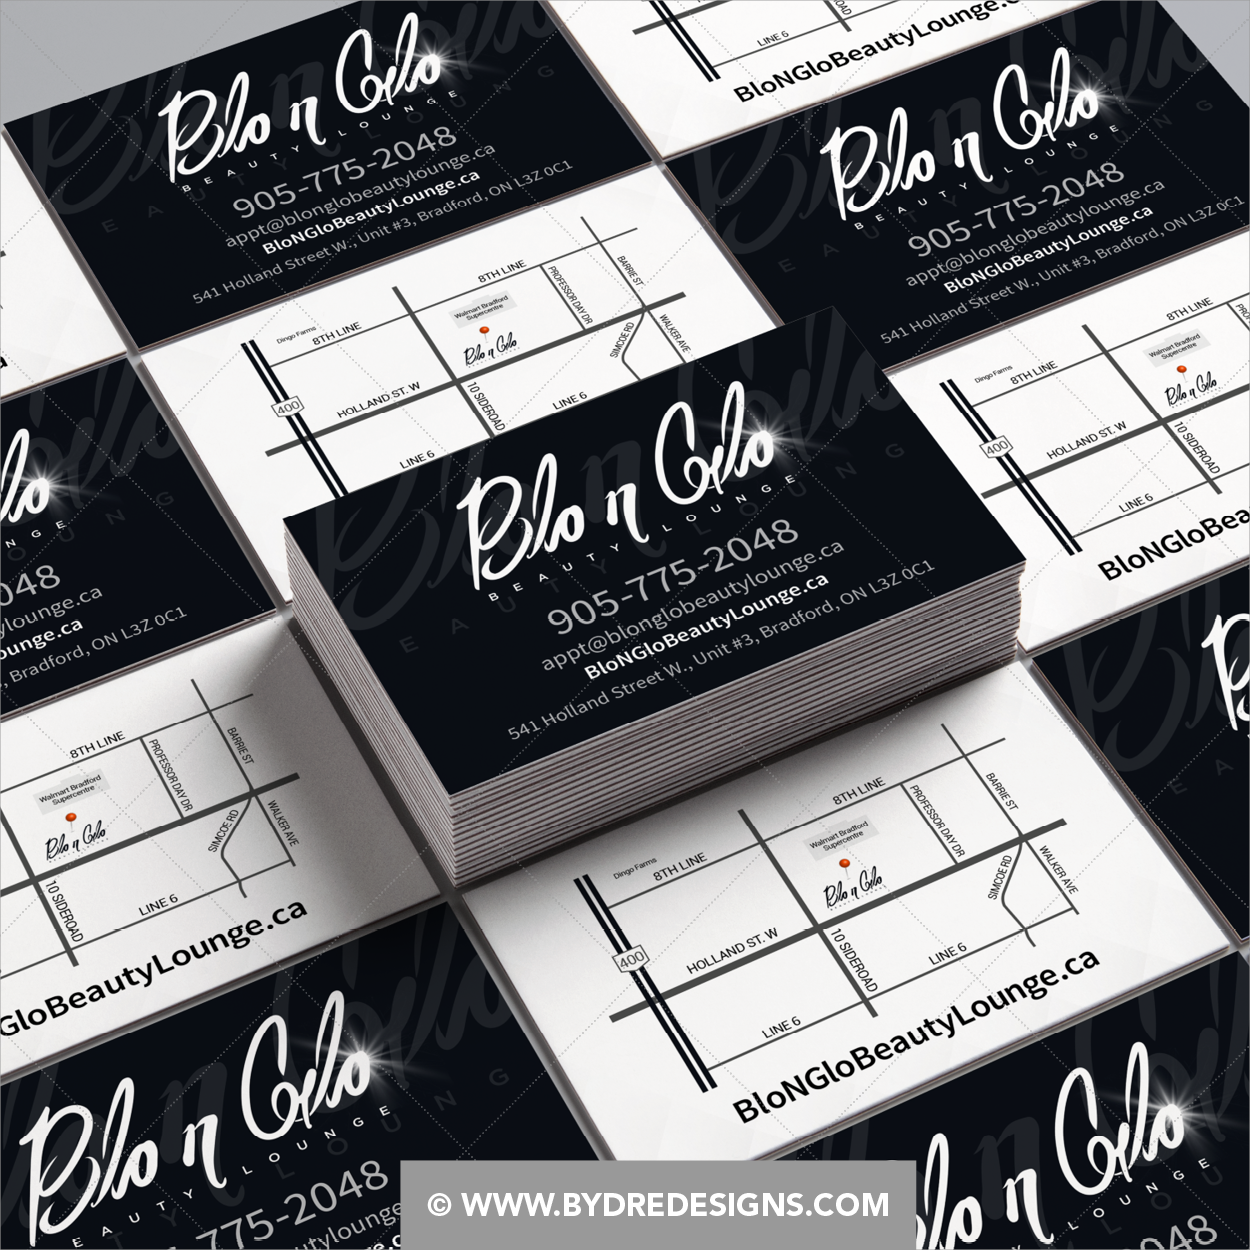 Business Card Design For Blo N Glo Beauty Lounge In Bradford On Classic Black And White Bus White Business Card Business Card Design Freelance Graphic Design